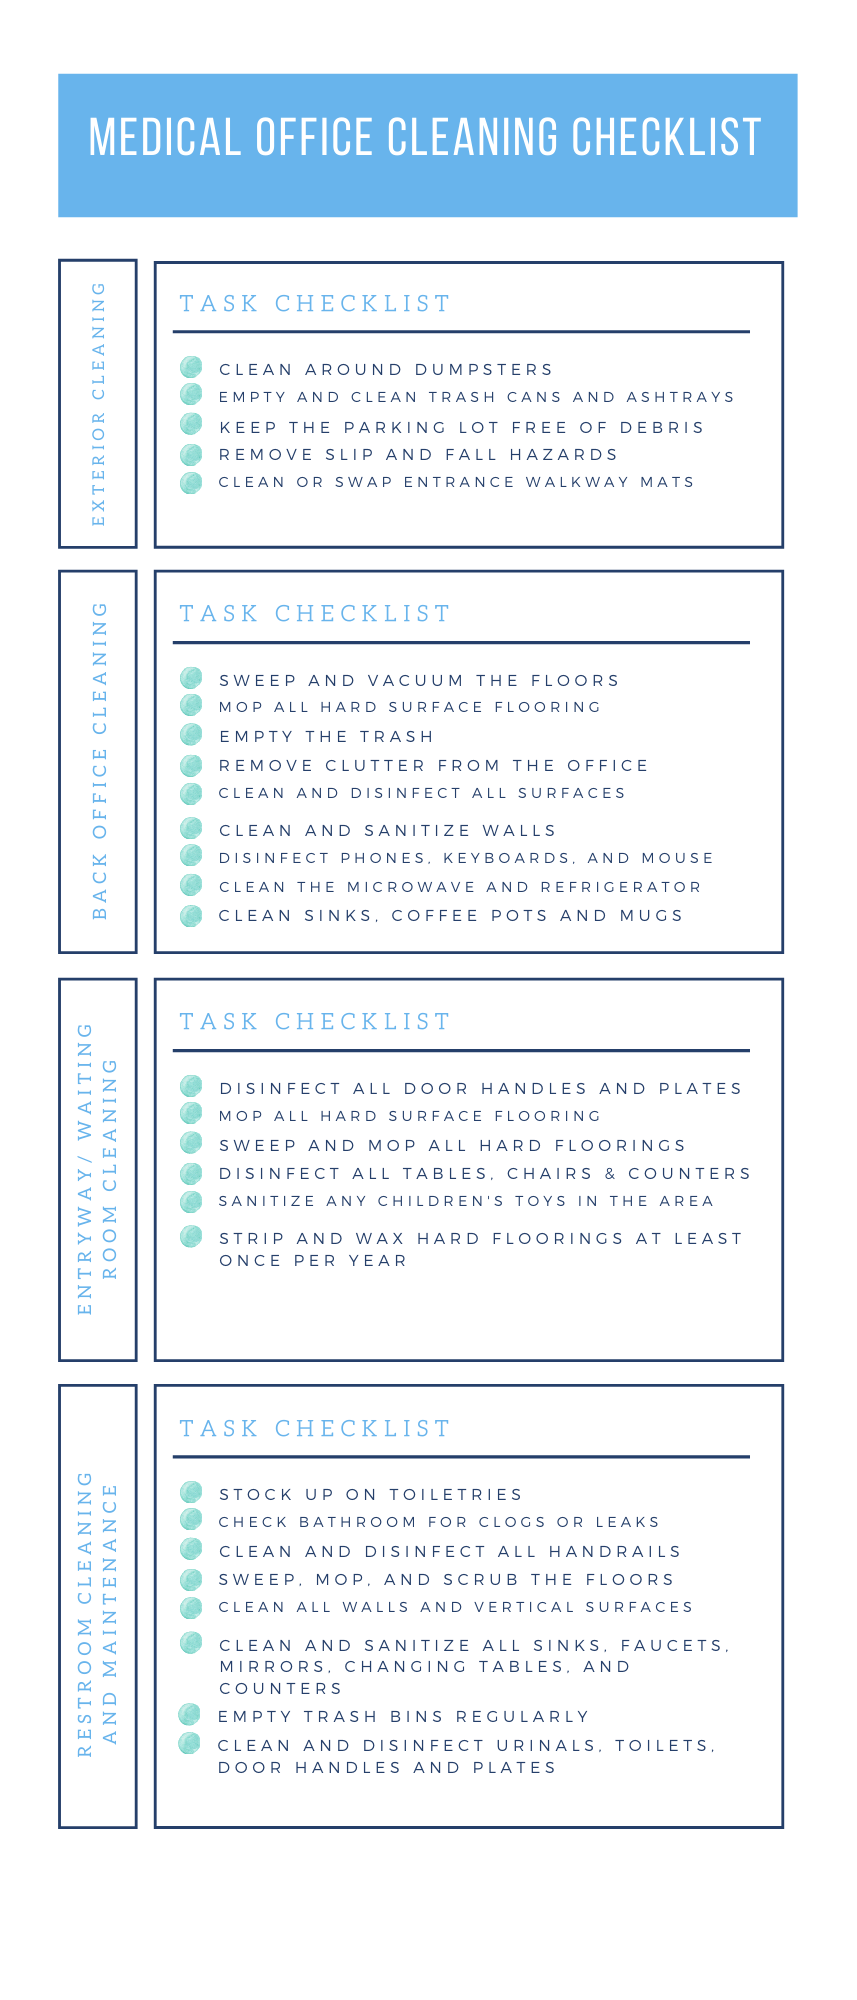 luce office medical office cleaning checklist 1